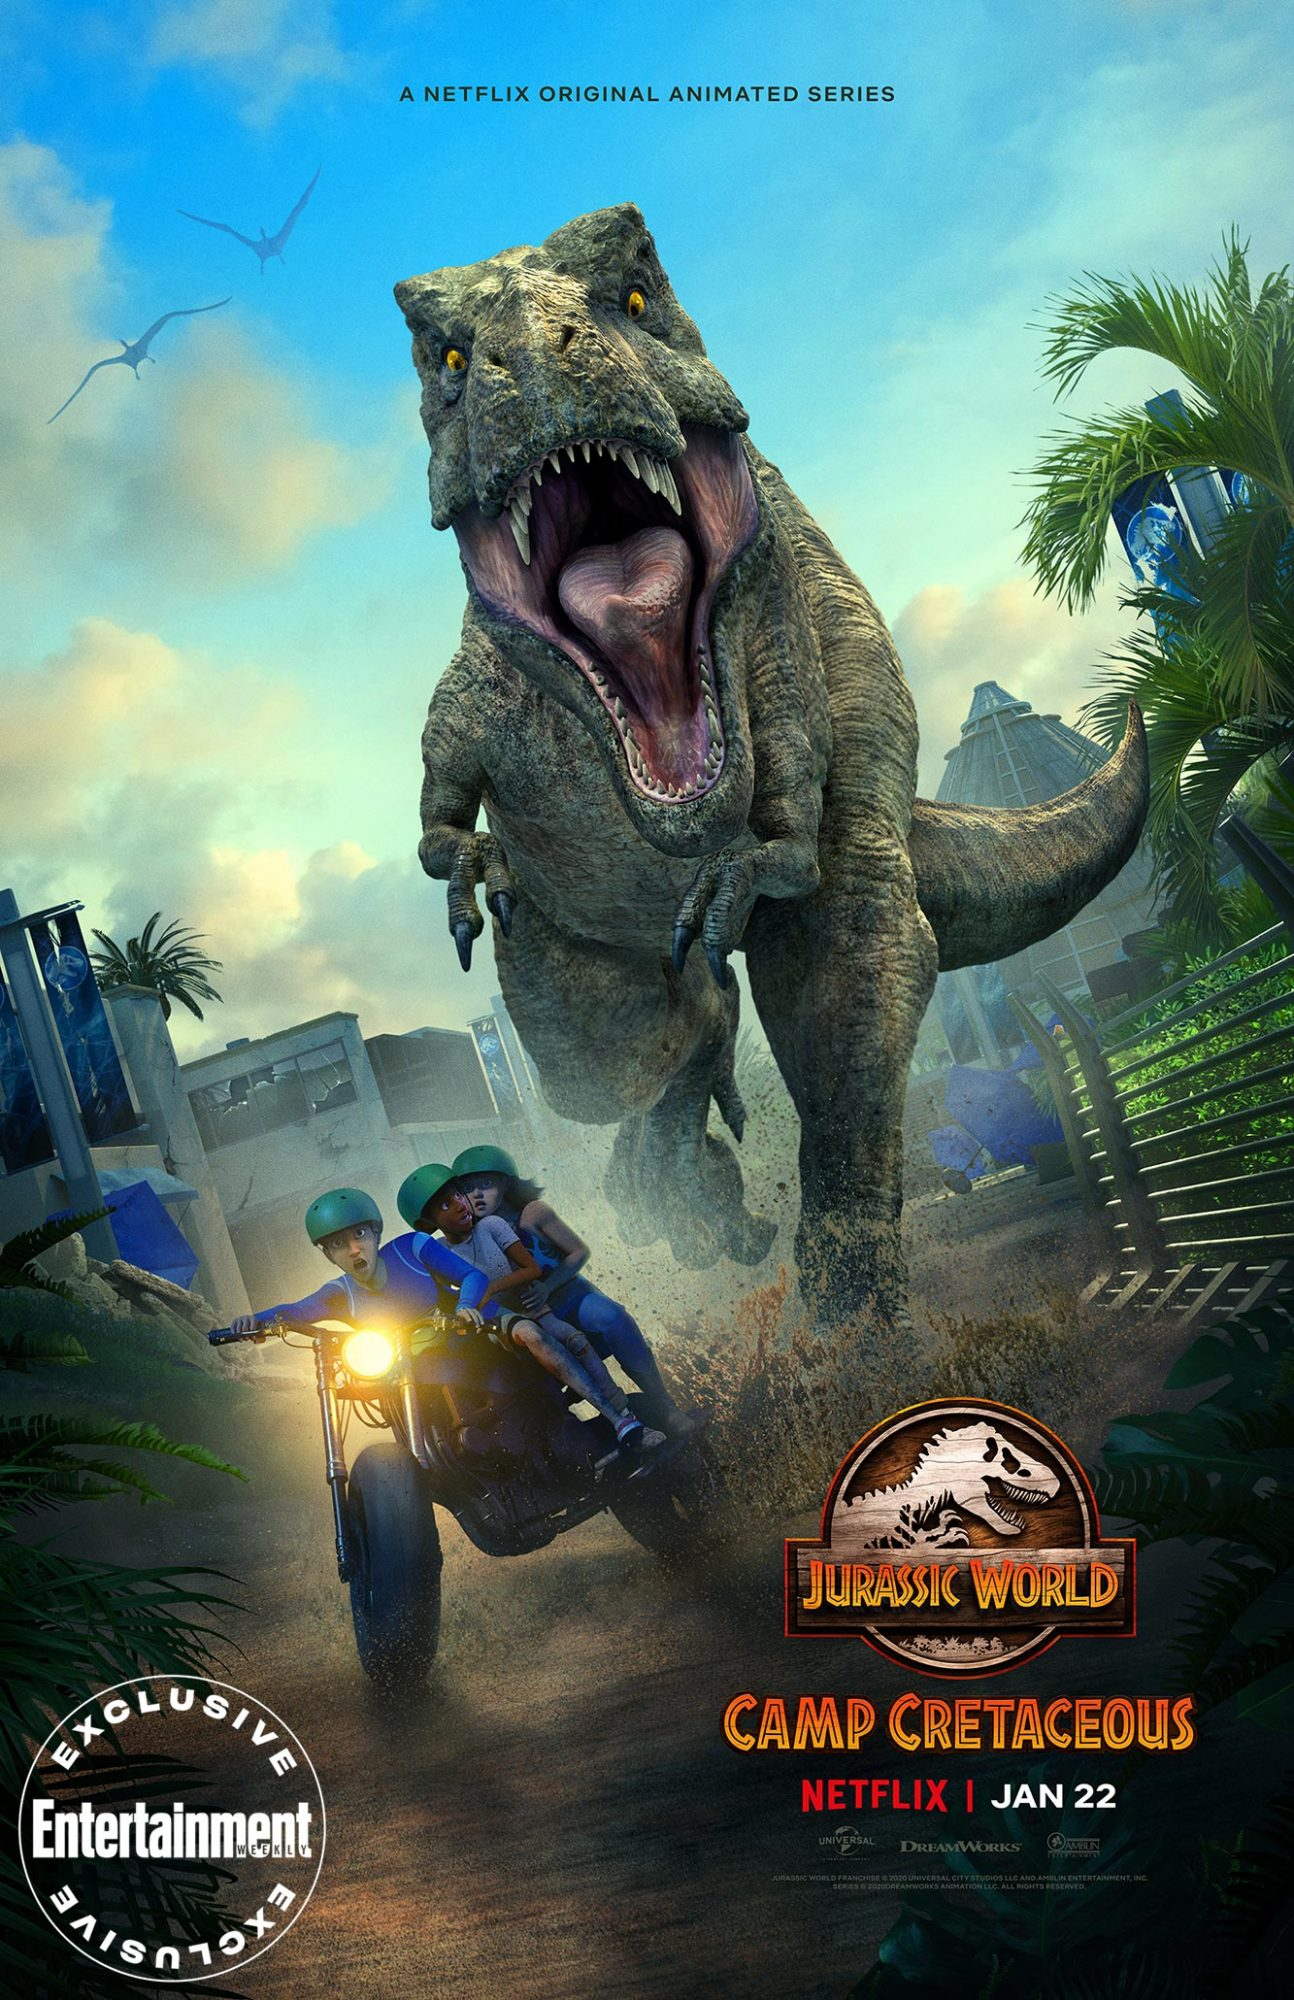 Jurassic World Camp Cretaceous Season 2 Trailer Sets January Premiere Ew Com Jurassic world camp cretaceous is an american animated science fiction adventure streaming television series. jurassic world camp cretaceous season